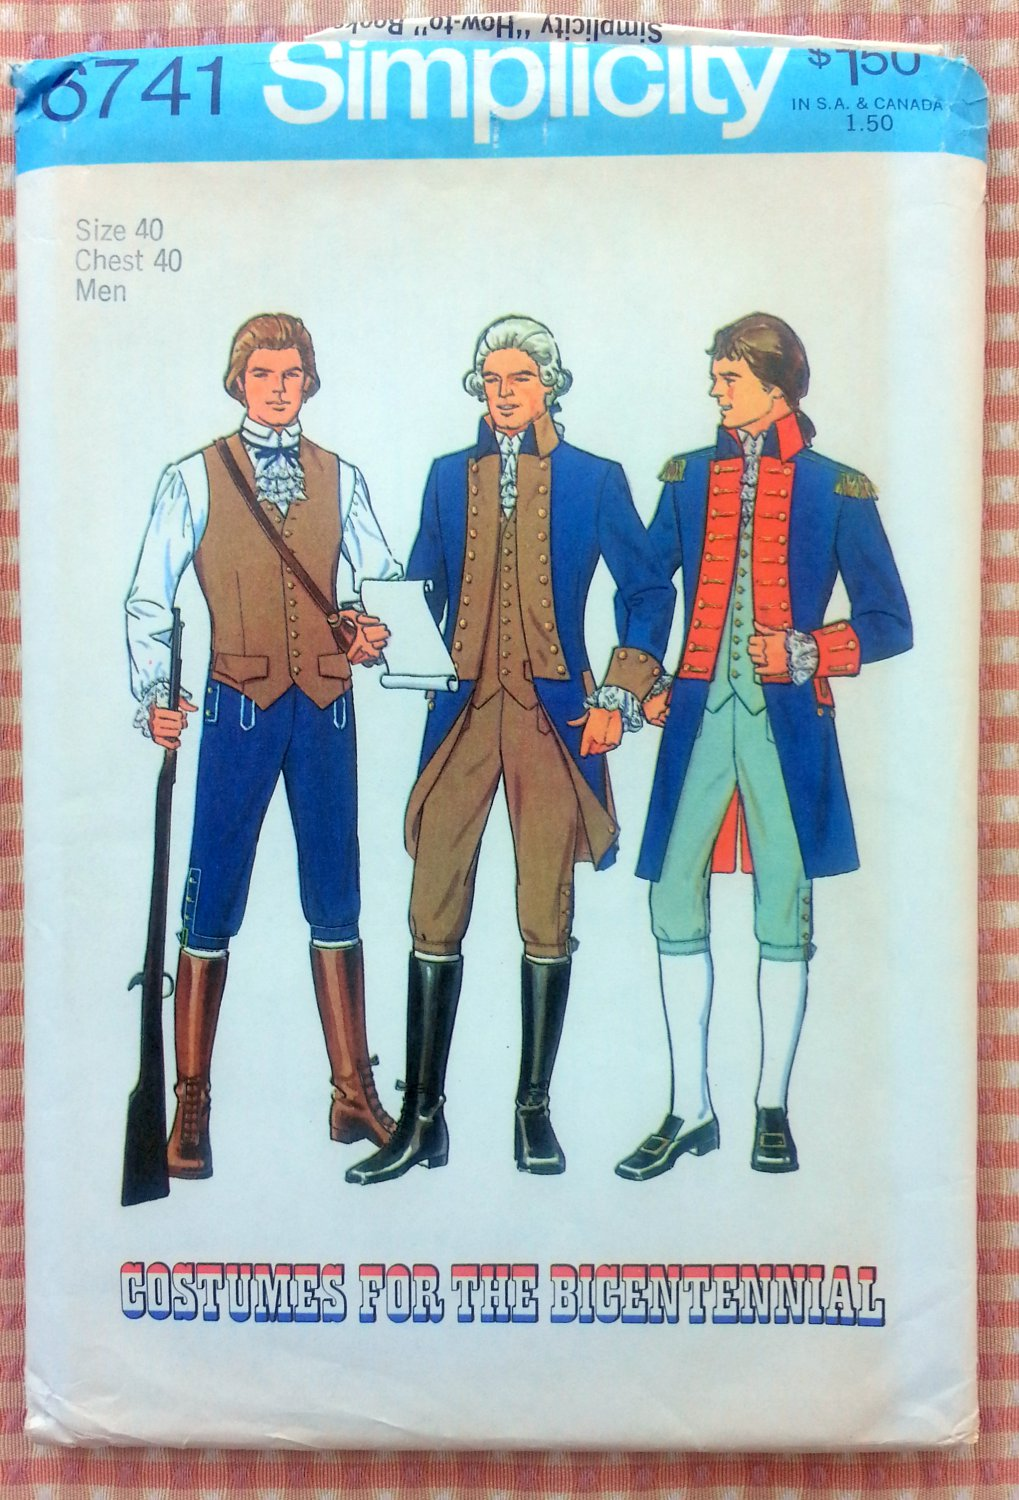 Revolutionary War Costume Vintage 70s Sewing Pattern Simplicity 6741